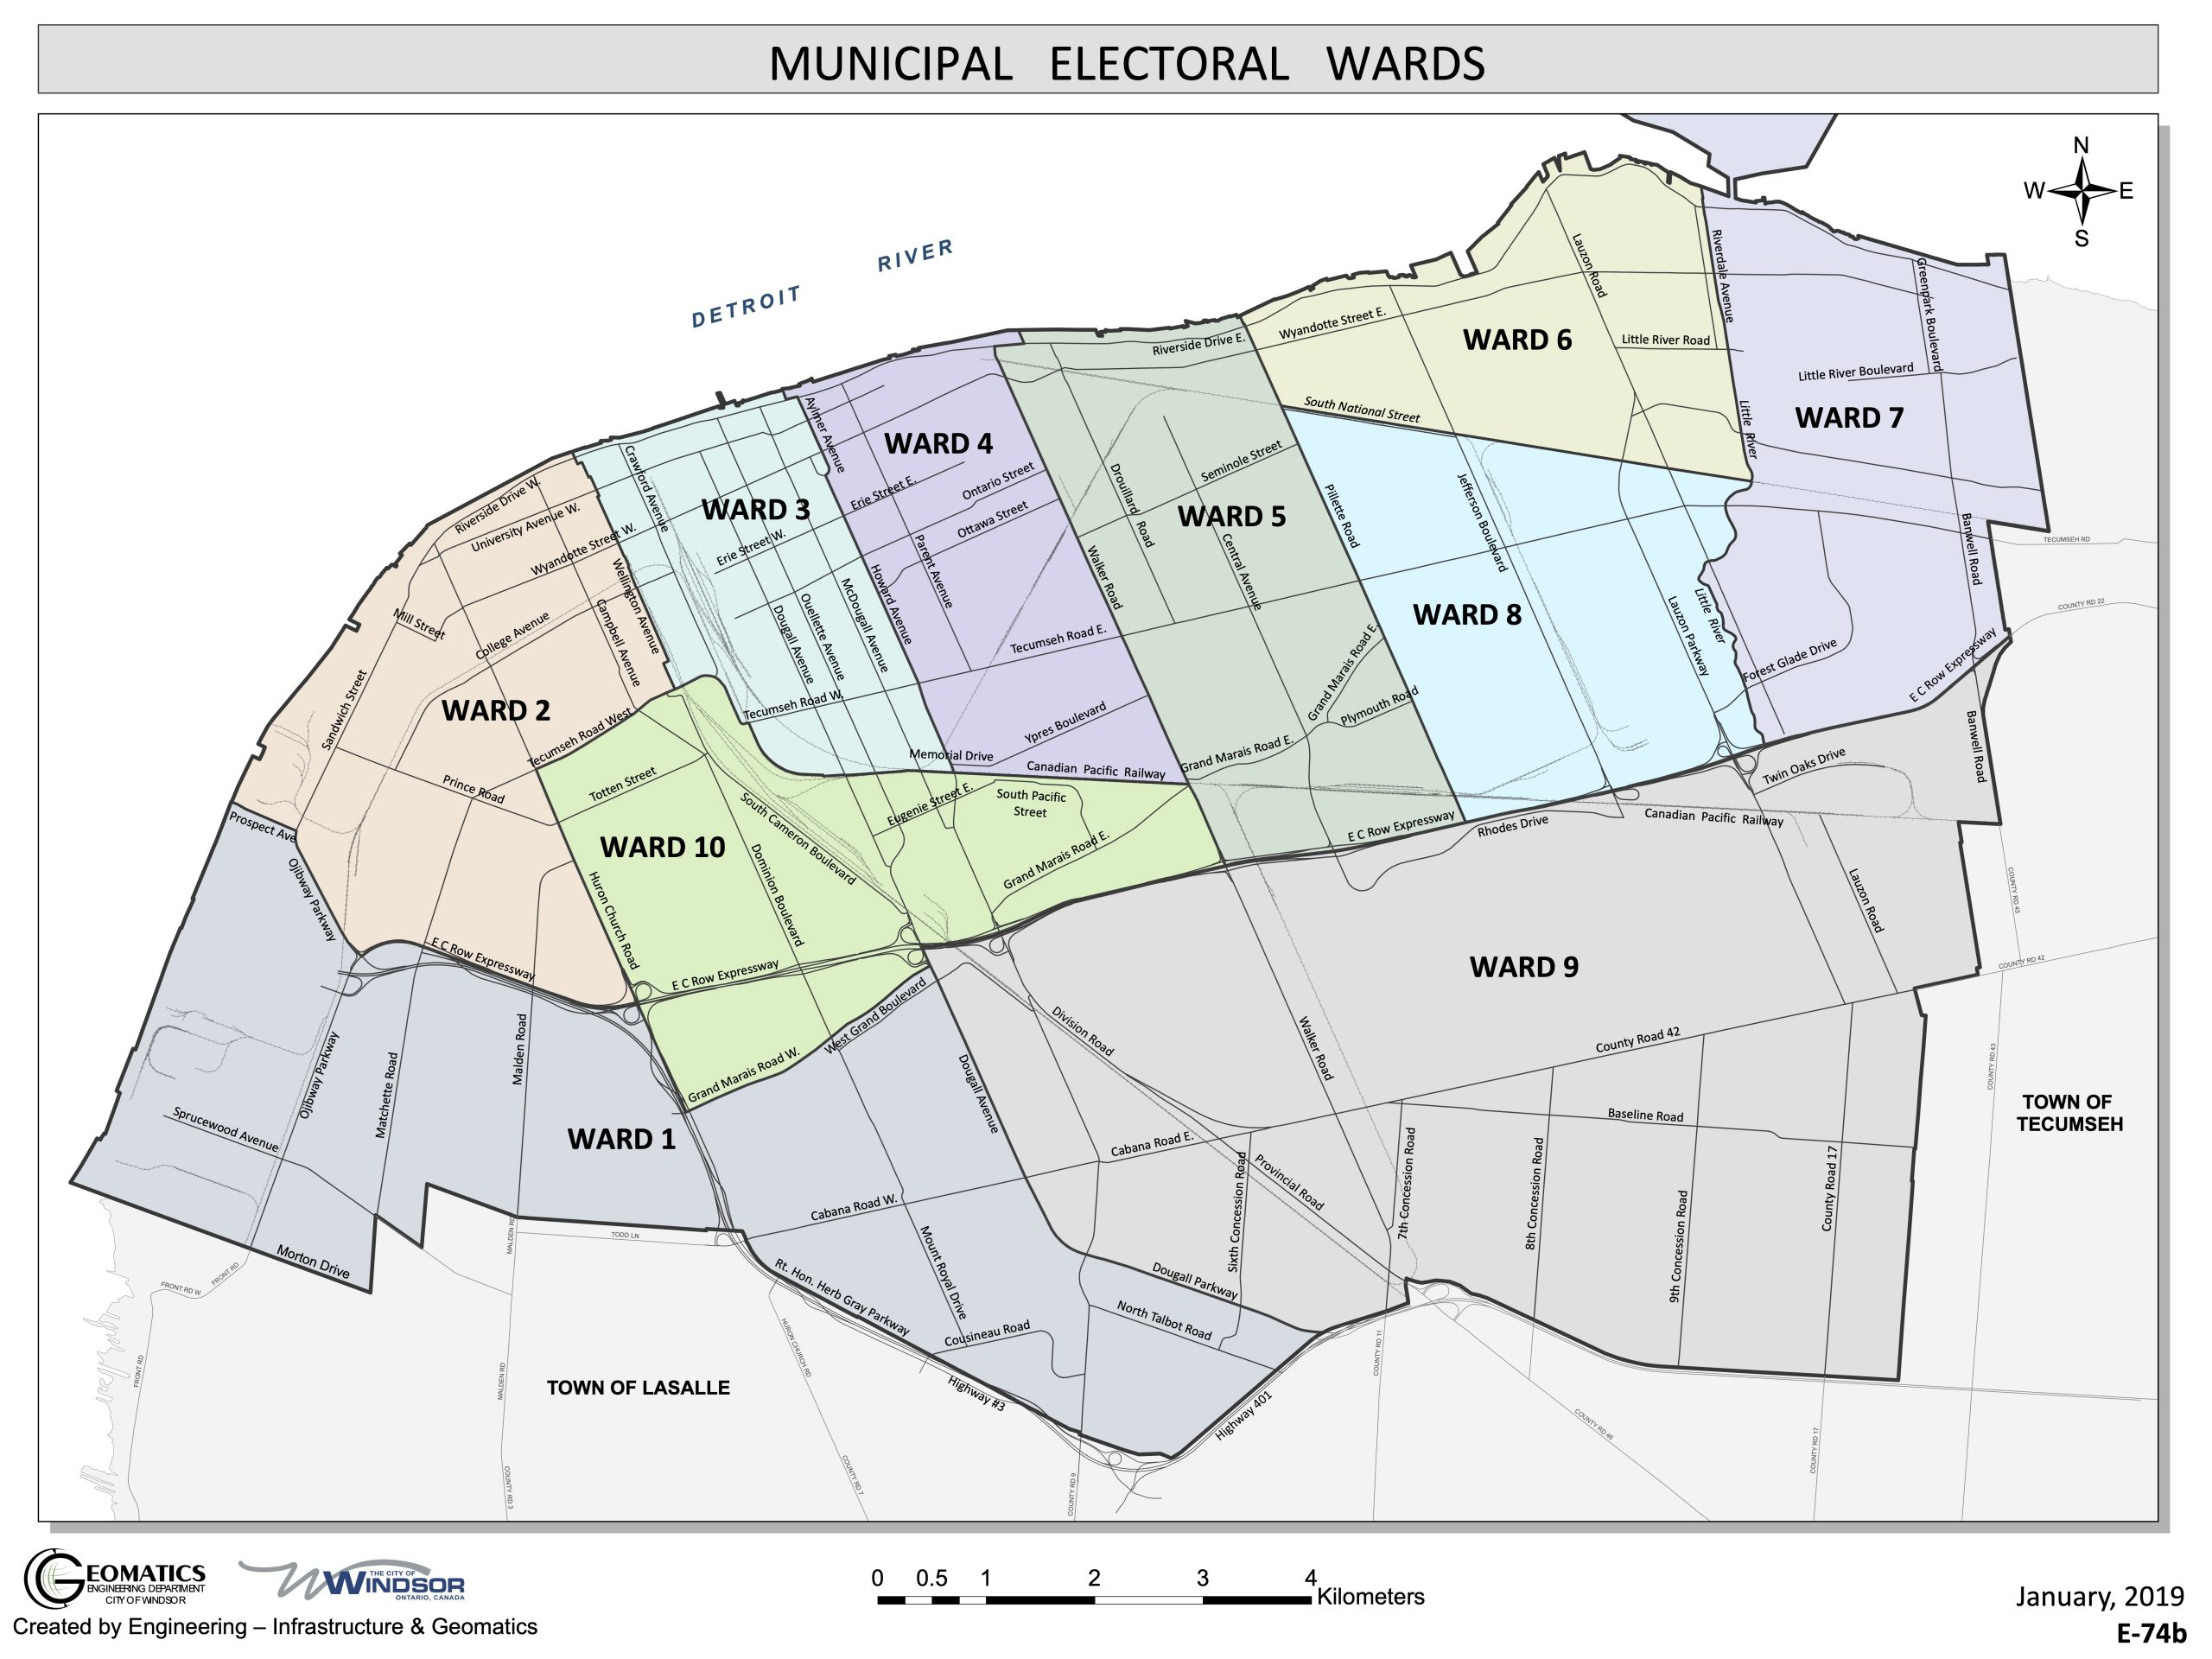 City of Windsor Ontario Ward Map